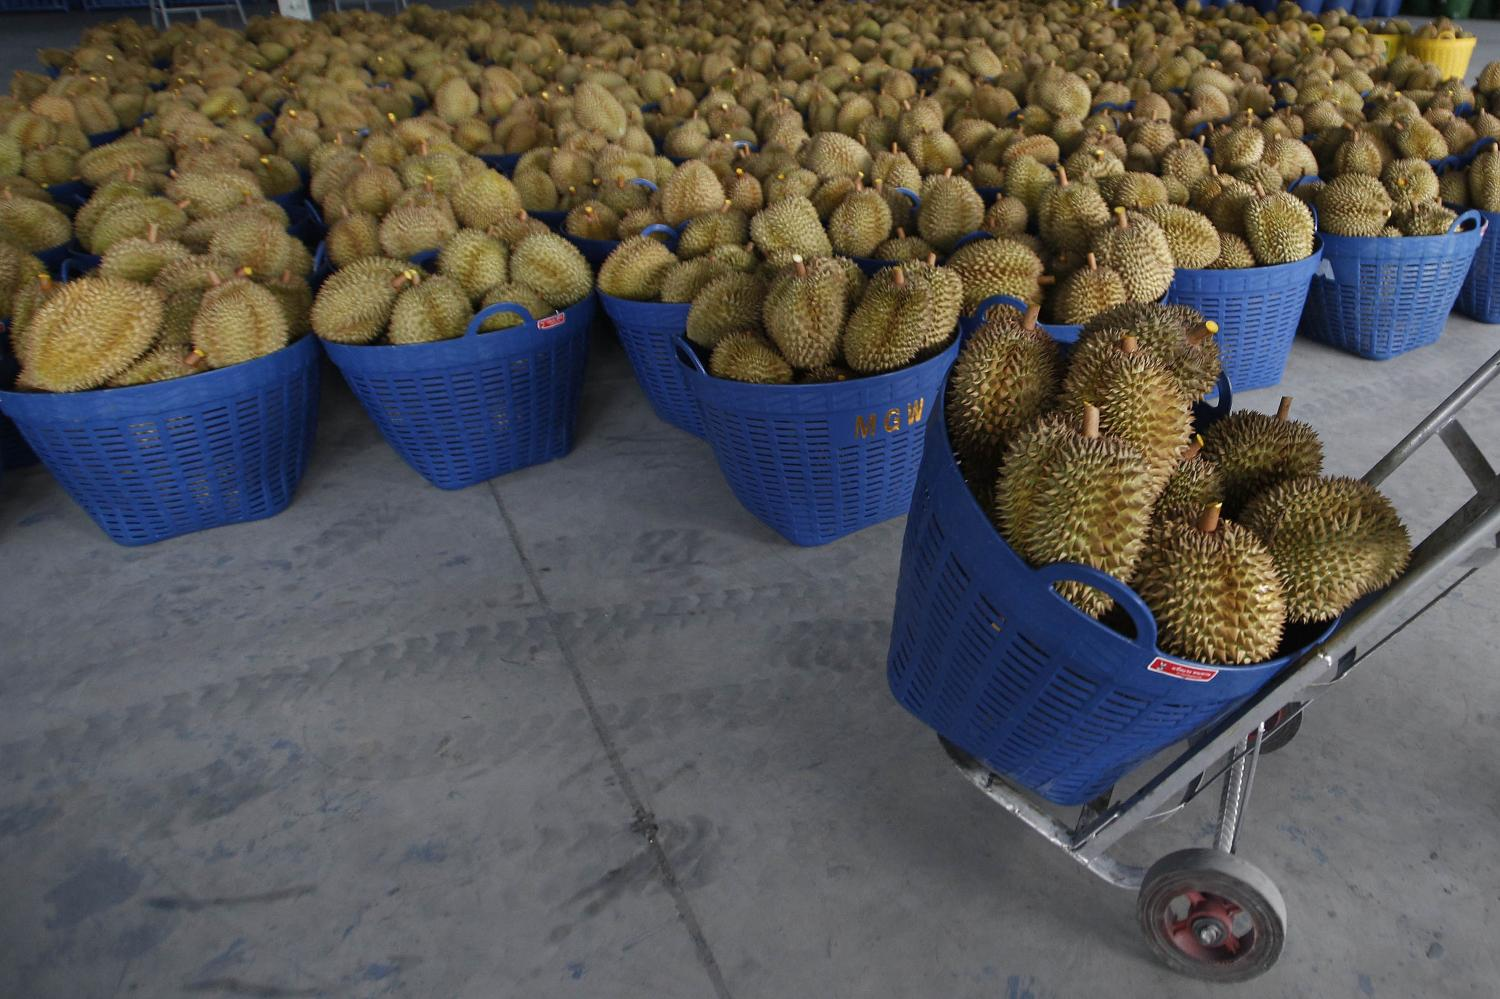 Durians are placed in large baskets awaiting to be freeze-dried at the Manguwang Food Co factory in Songkhla's Thepha district before they are exported to China.